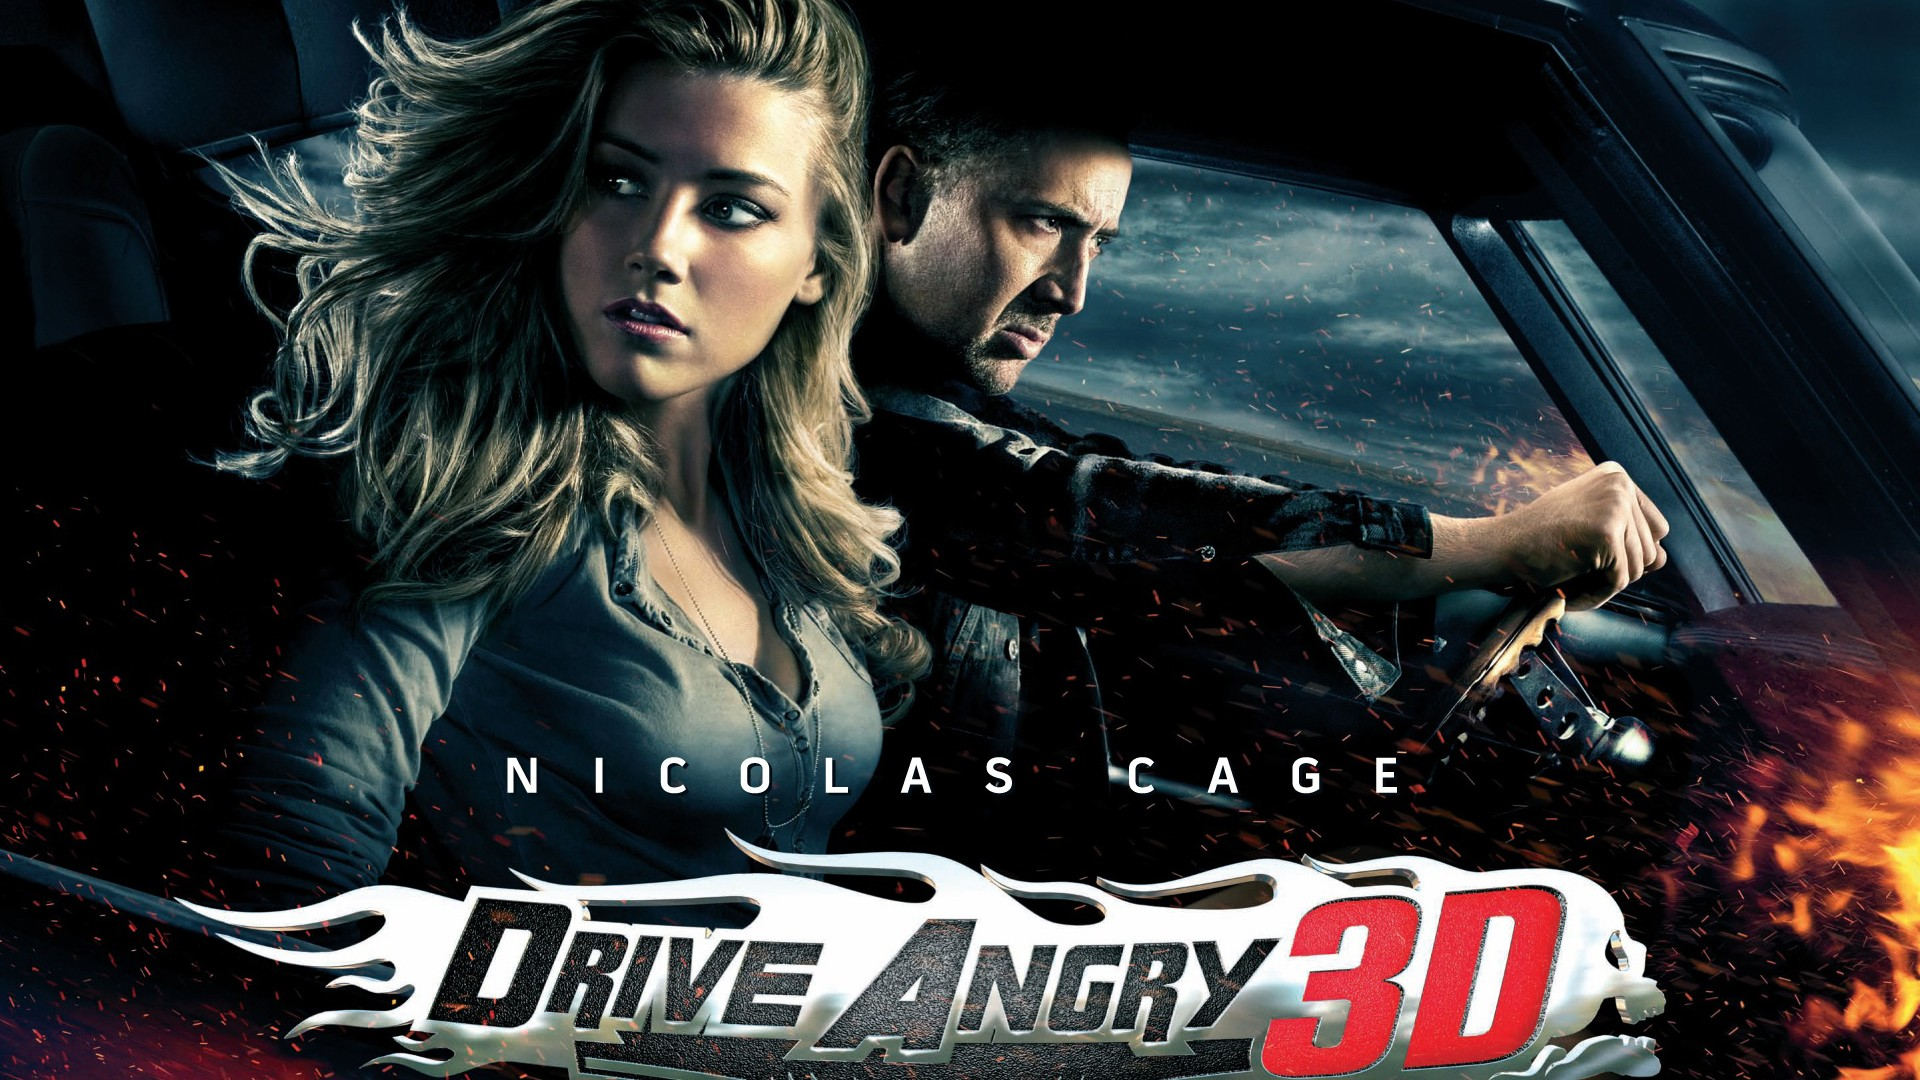 nicolas cage drive angry 3d wallpaper hd wallpapers